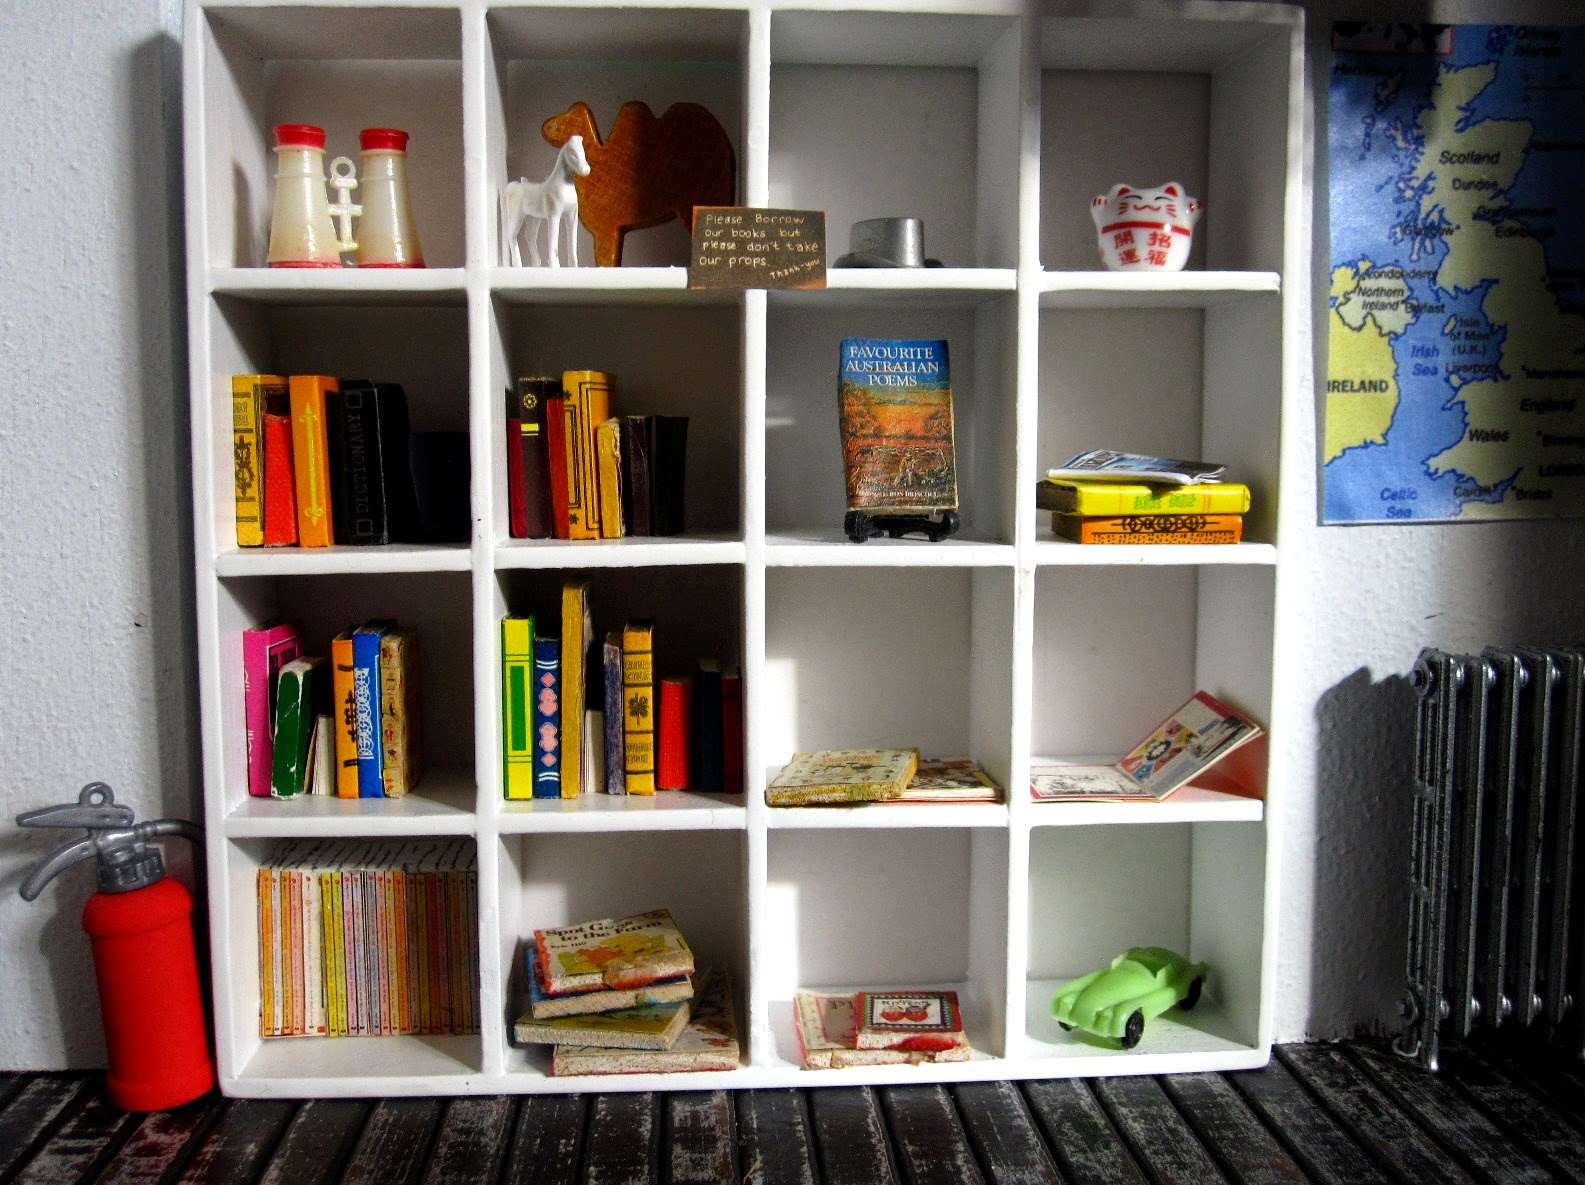 Bookcase in a modern dolls' house miniature pop-up Little Library,